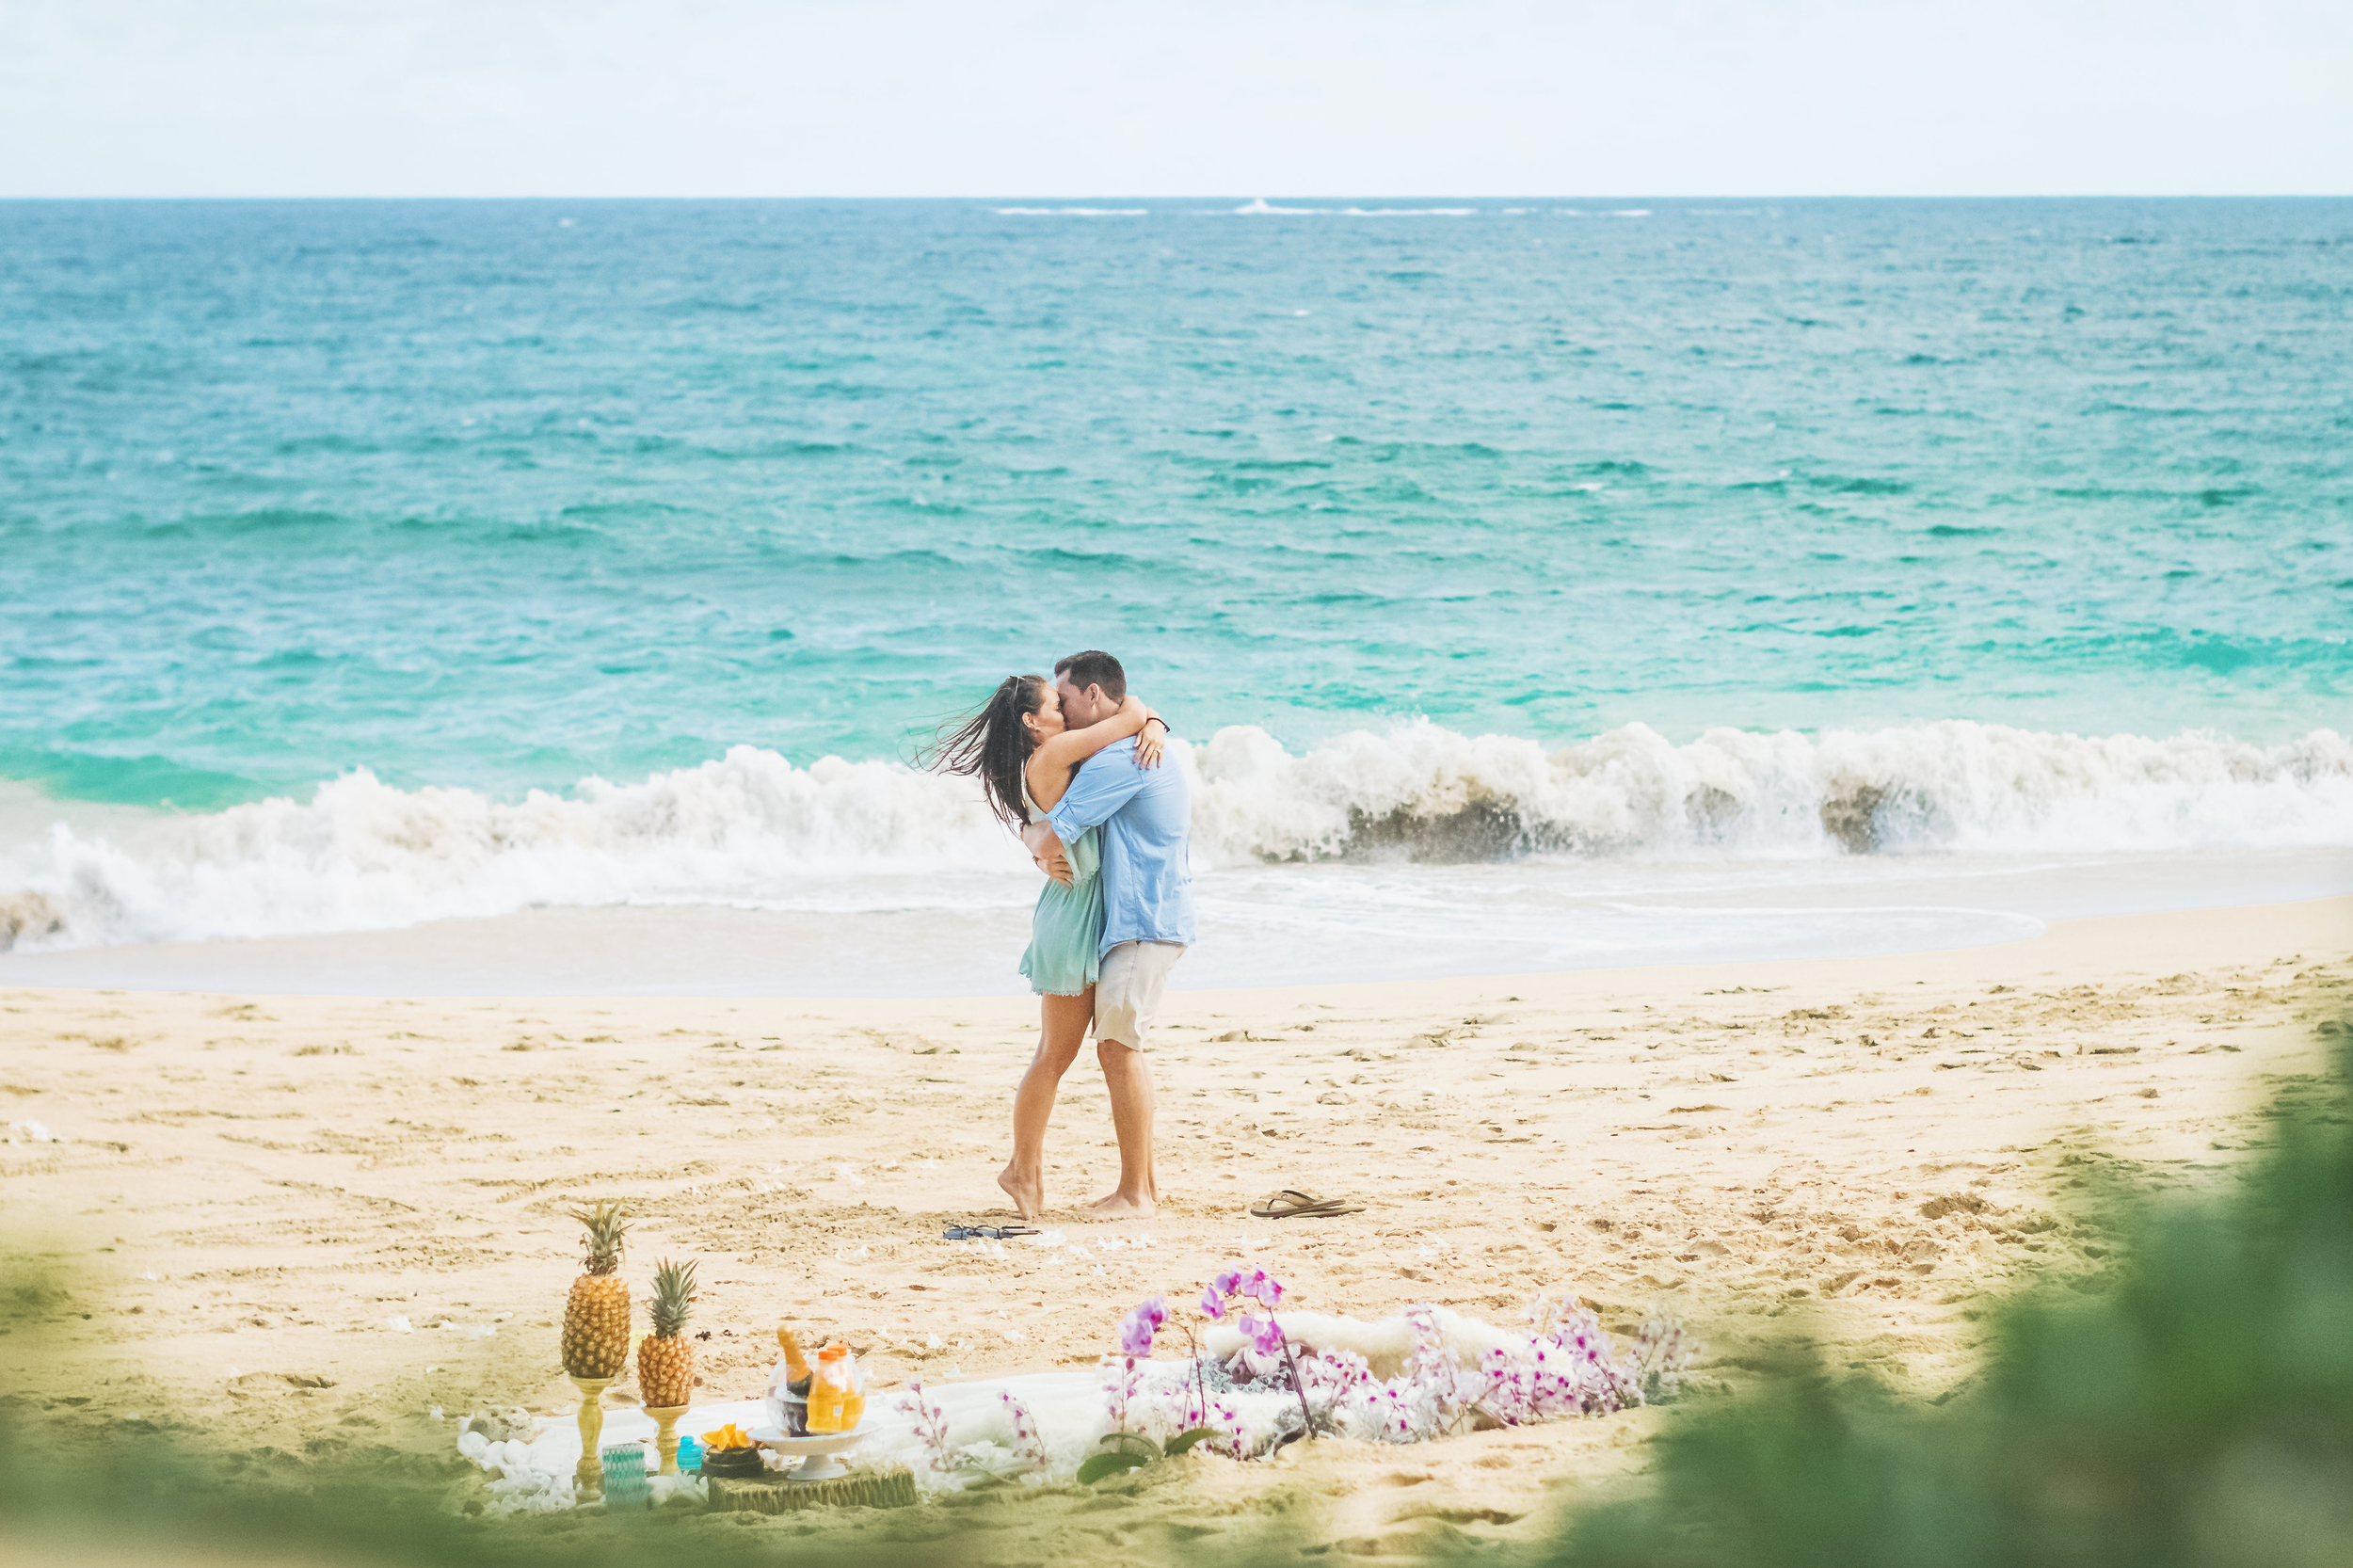 angie-diaz-photography-maui-proposal-baldwin-beach-aimee-tyler-12.jpg